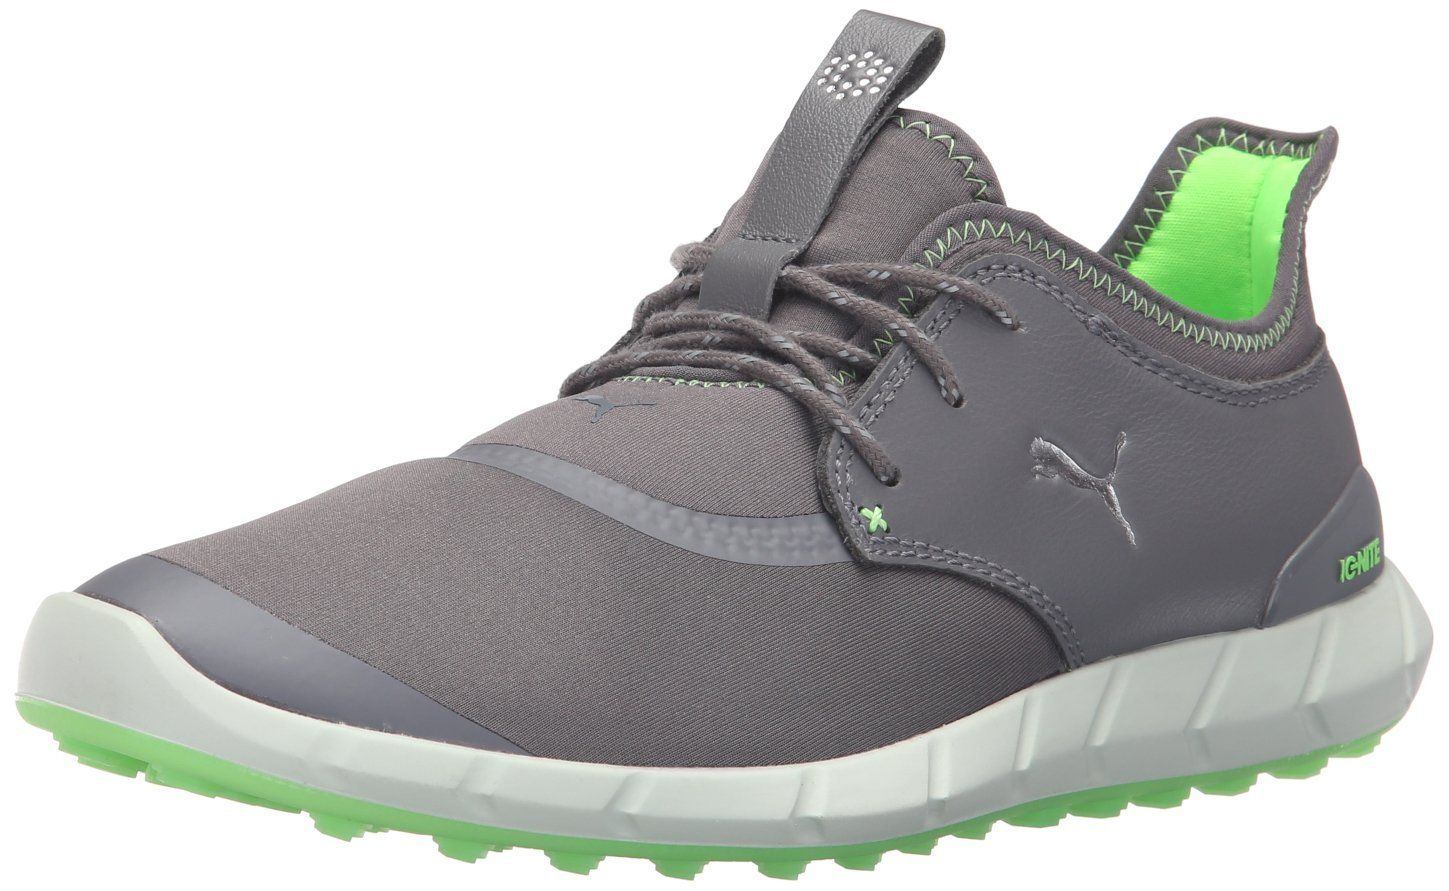 Puma Golf Men s Ignite Spikeless Sport Golf-Shoes 38cb0ce8a